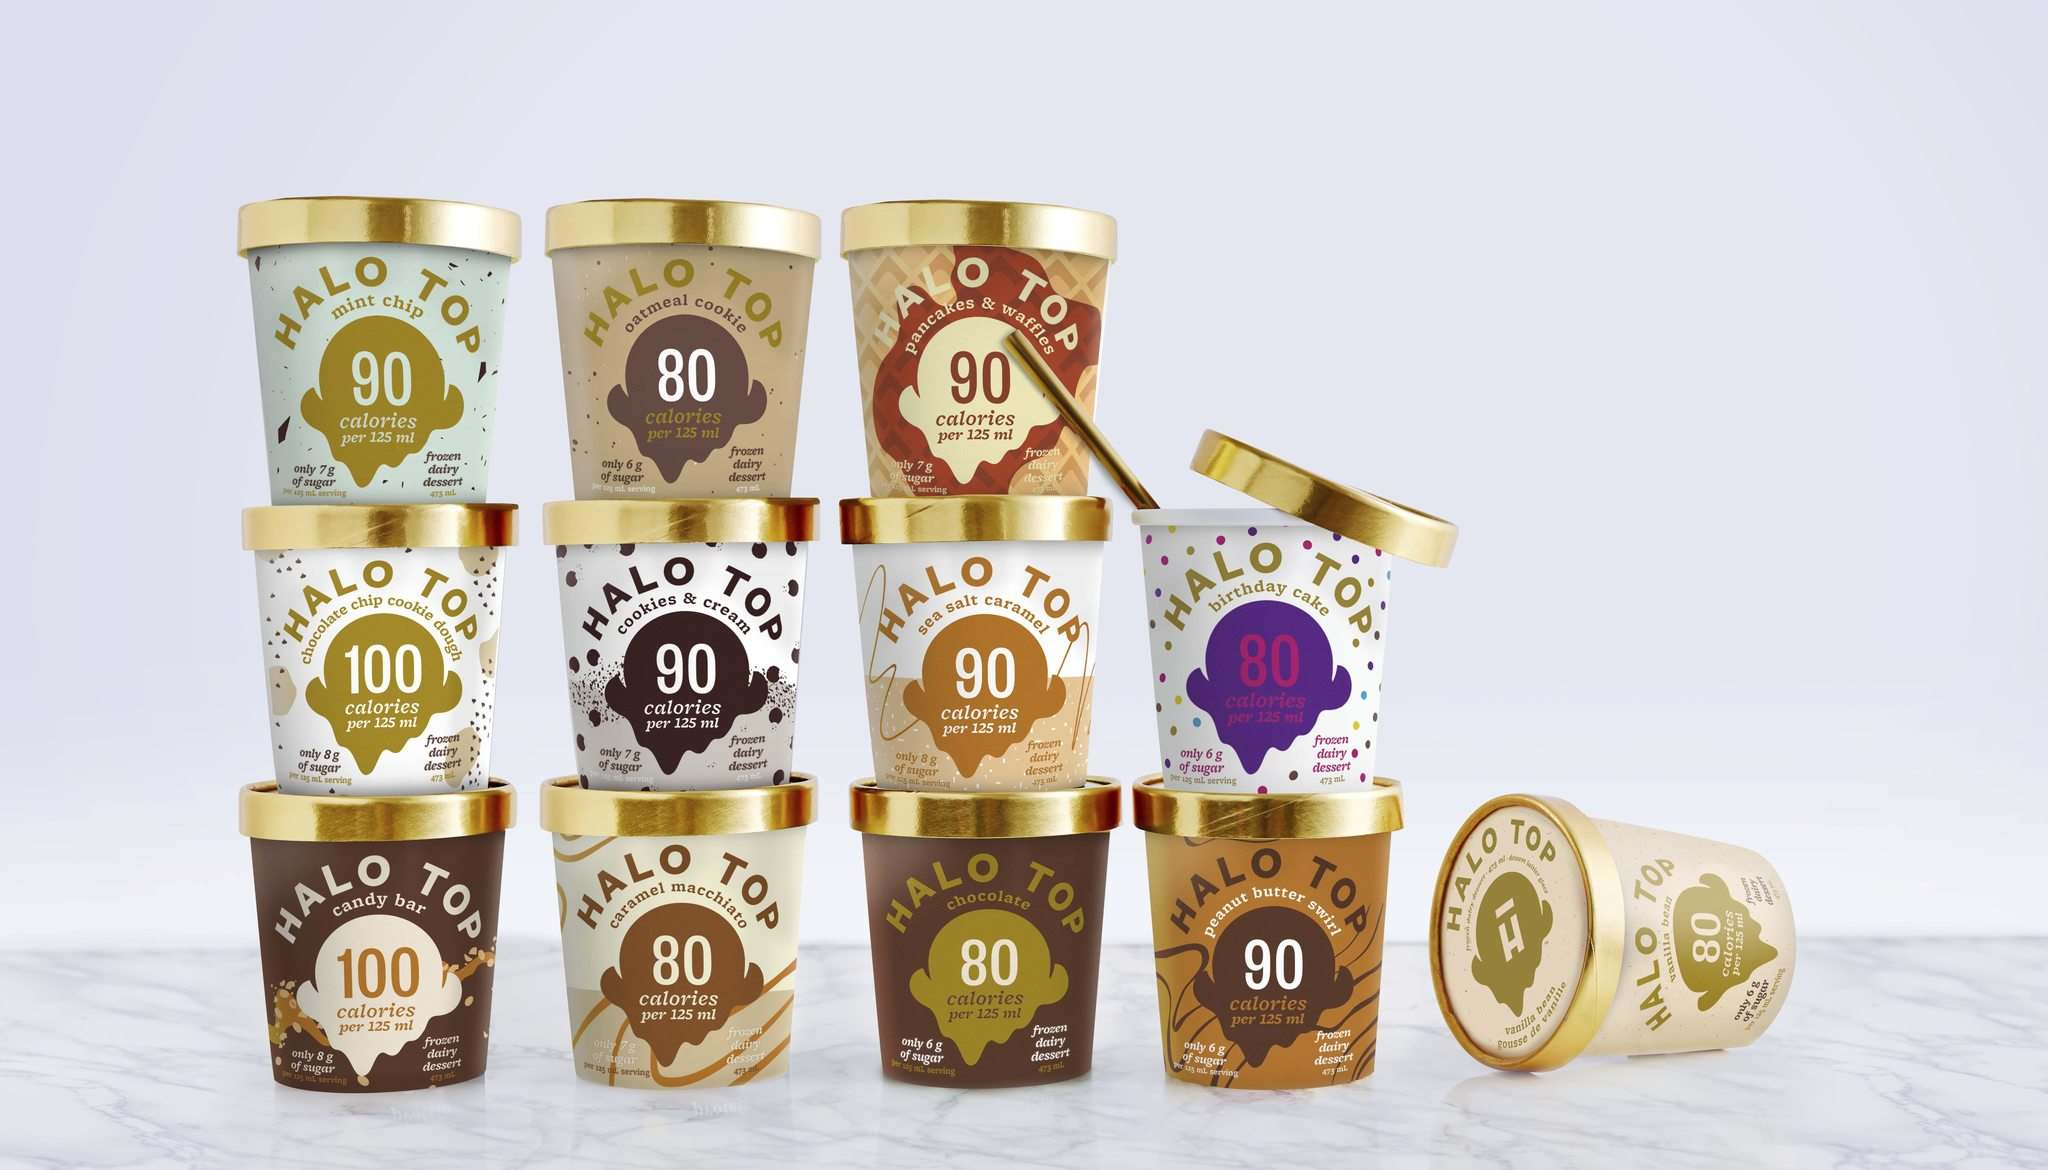 Supplied</p><p>The popular low-calorie, low-sugar, high-protein &#8216;frozen dairy dessert&rsquo; Halo Top has arrived in Canada, with 12 flavours now available in freezer aisles north of the border.</p></p>